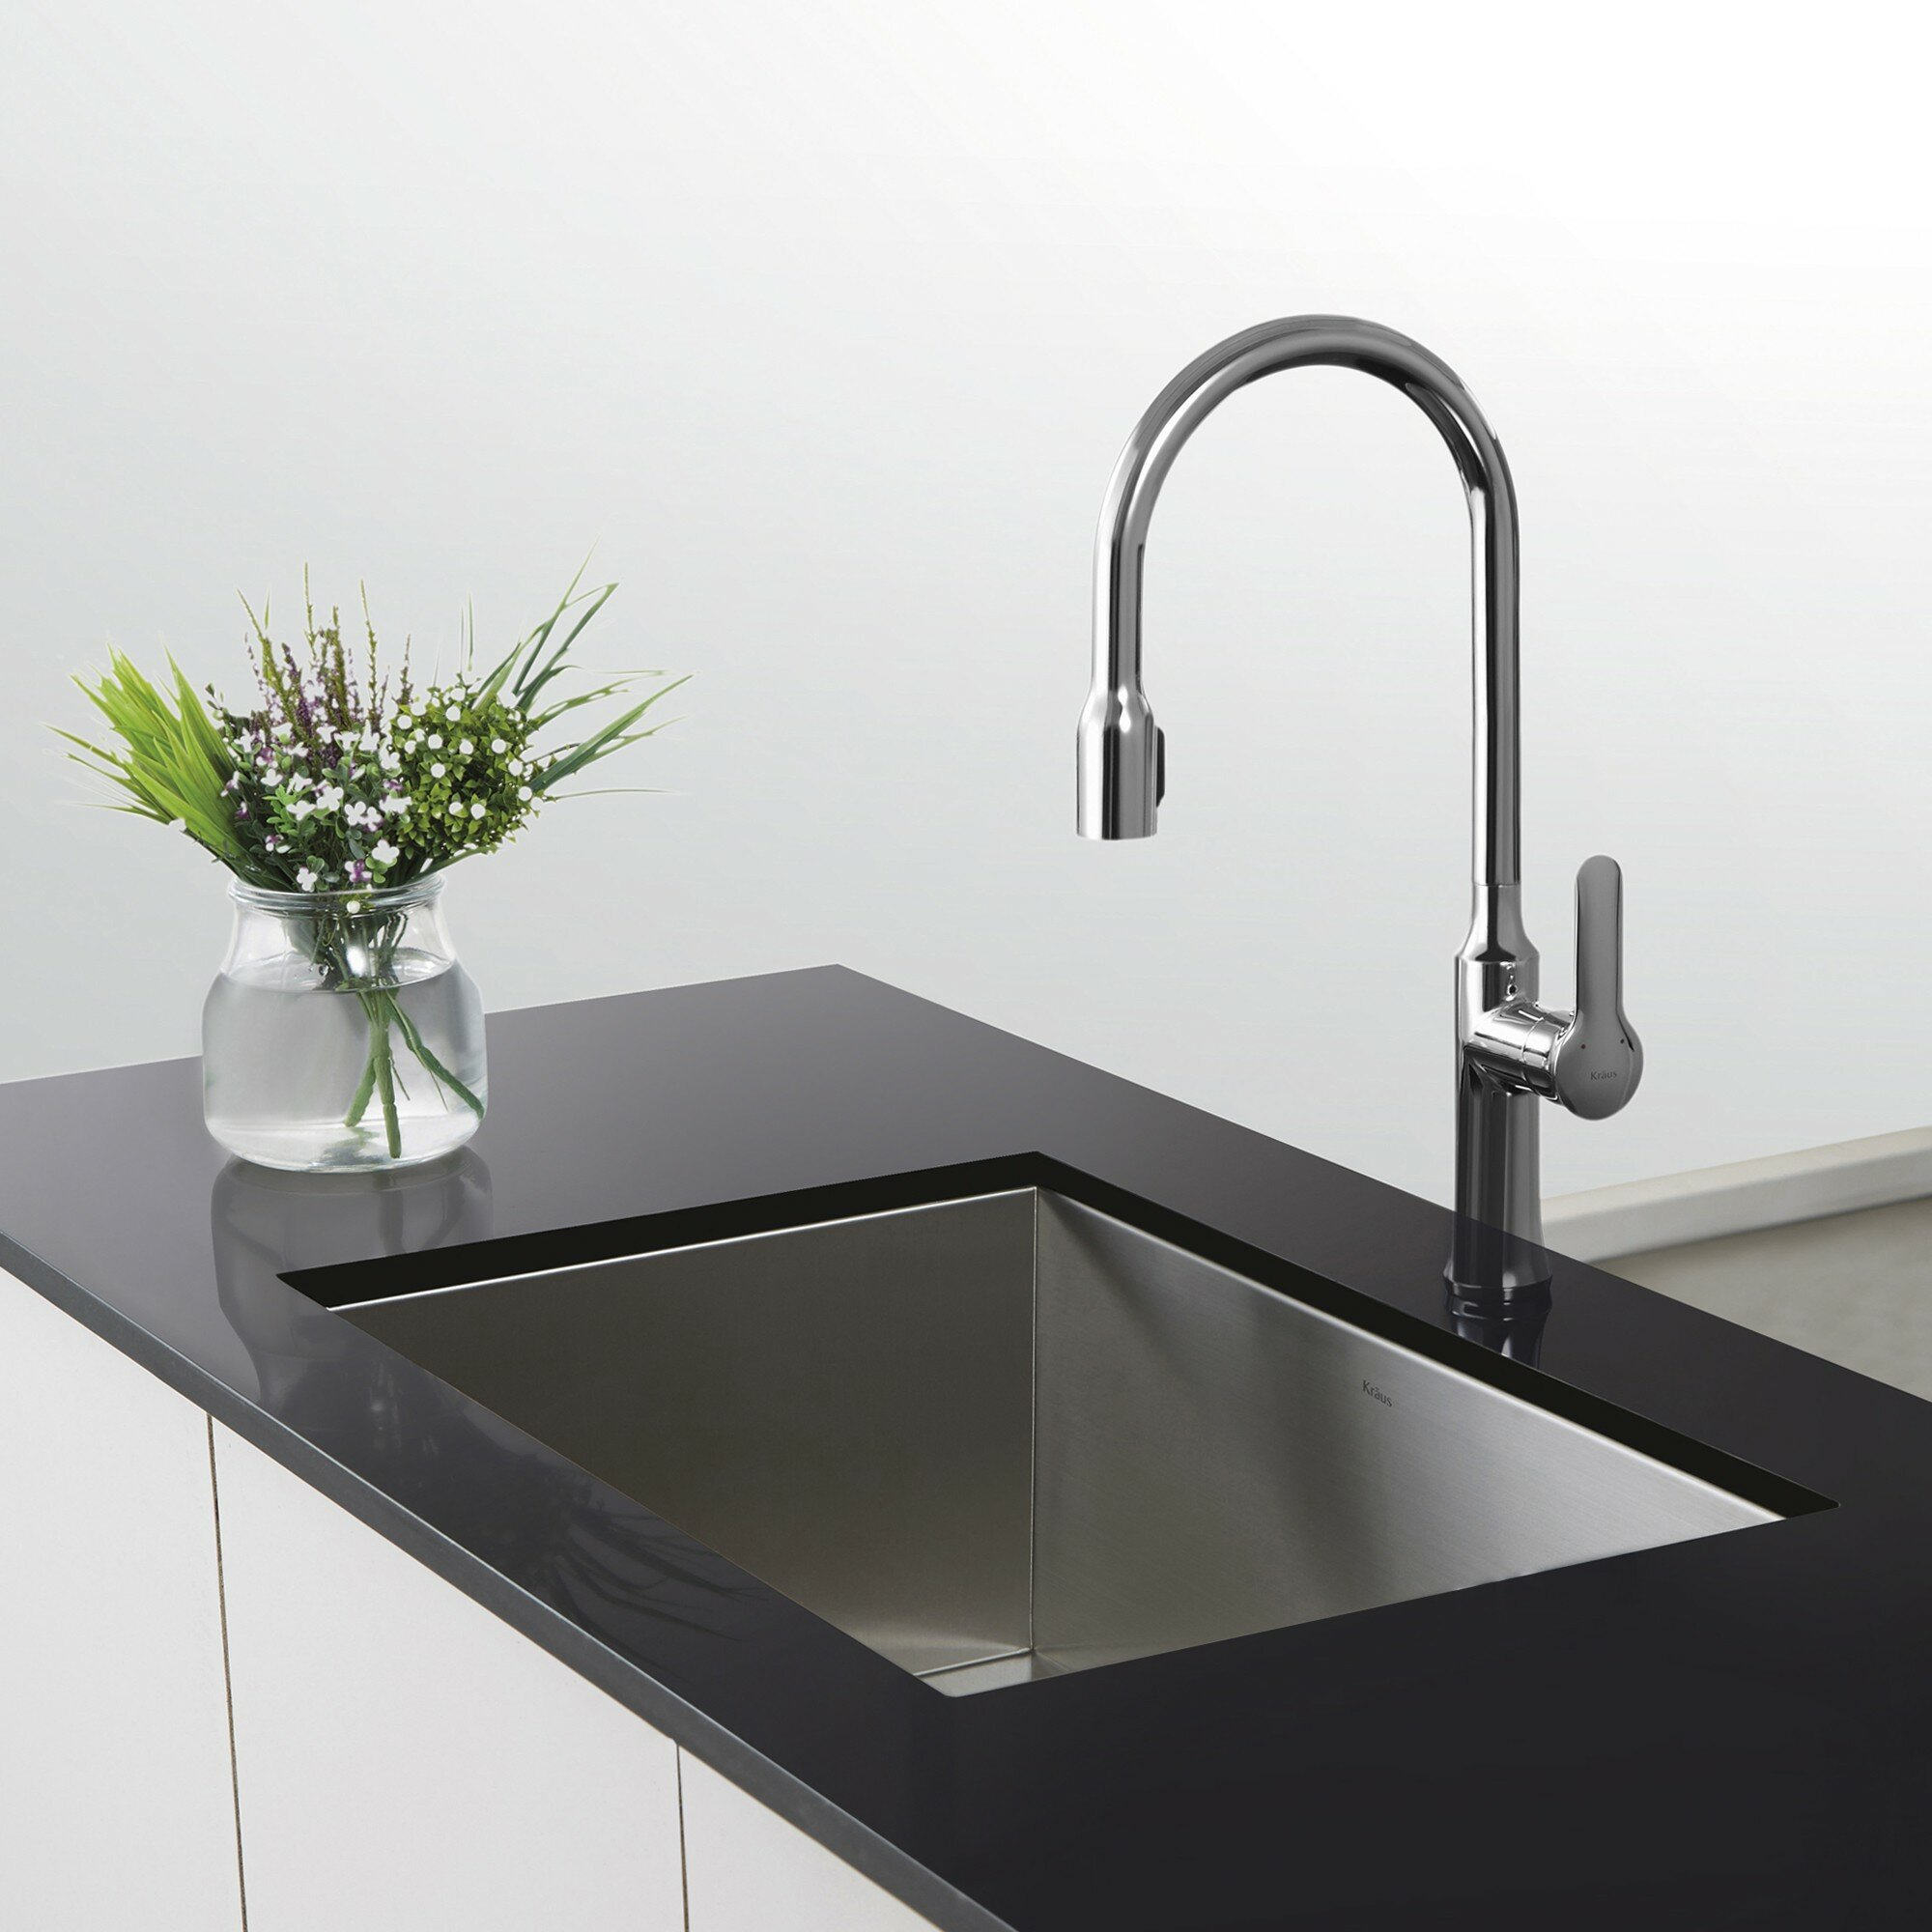 Oil Rubbed Bronze Waterfall Dual Handle Bathroom Sink Faucet